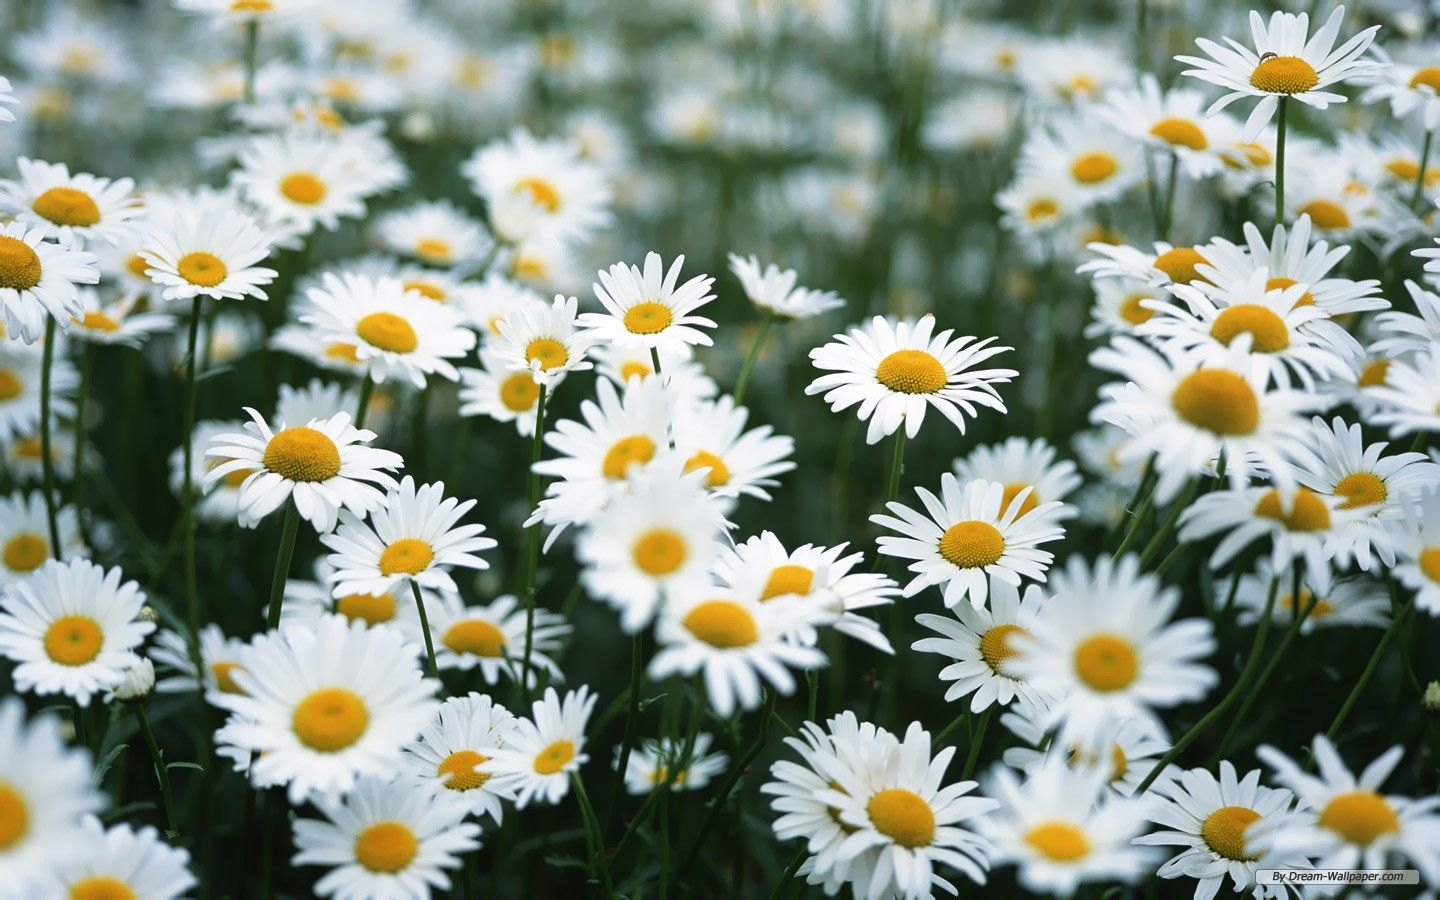 Daisies perfect flowers for your garden the secret garden daisies perfect flowers for your garden izmirmasajfo Gallery